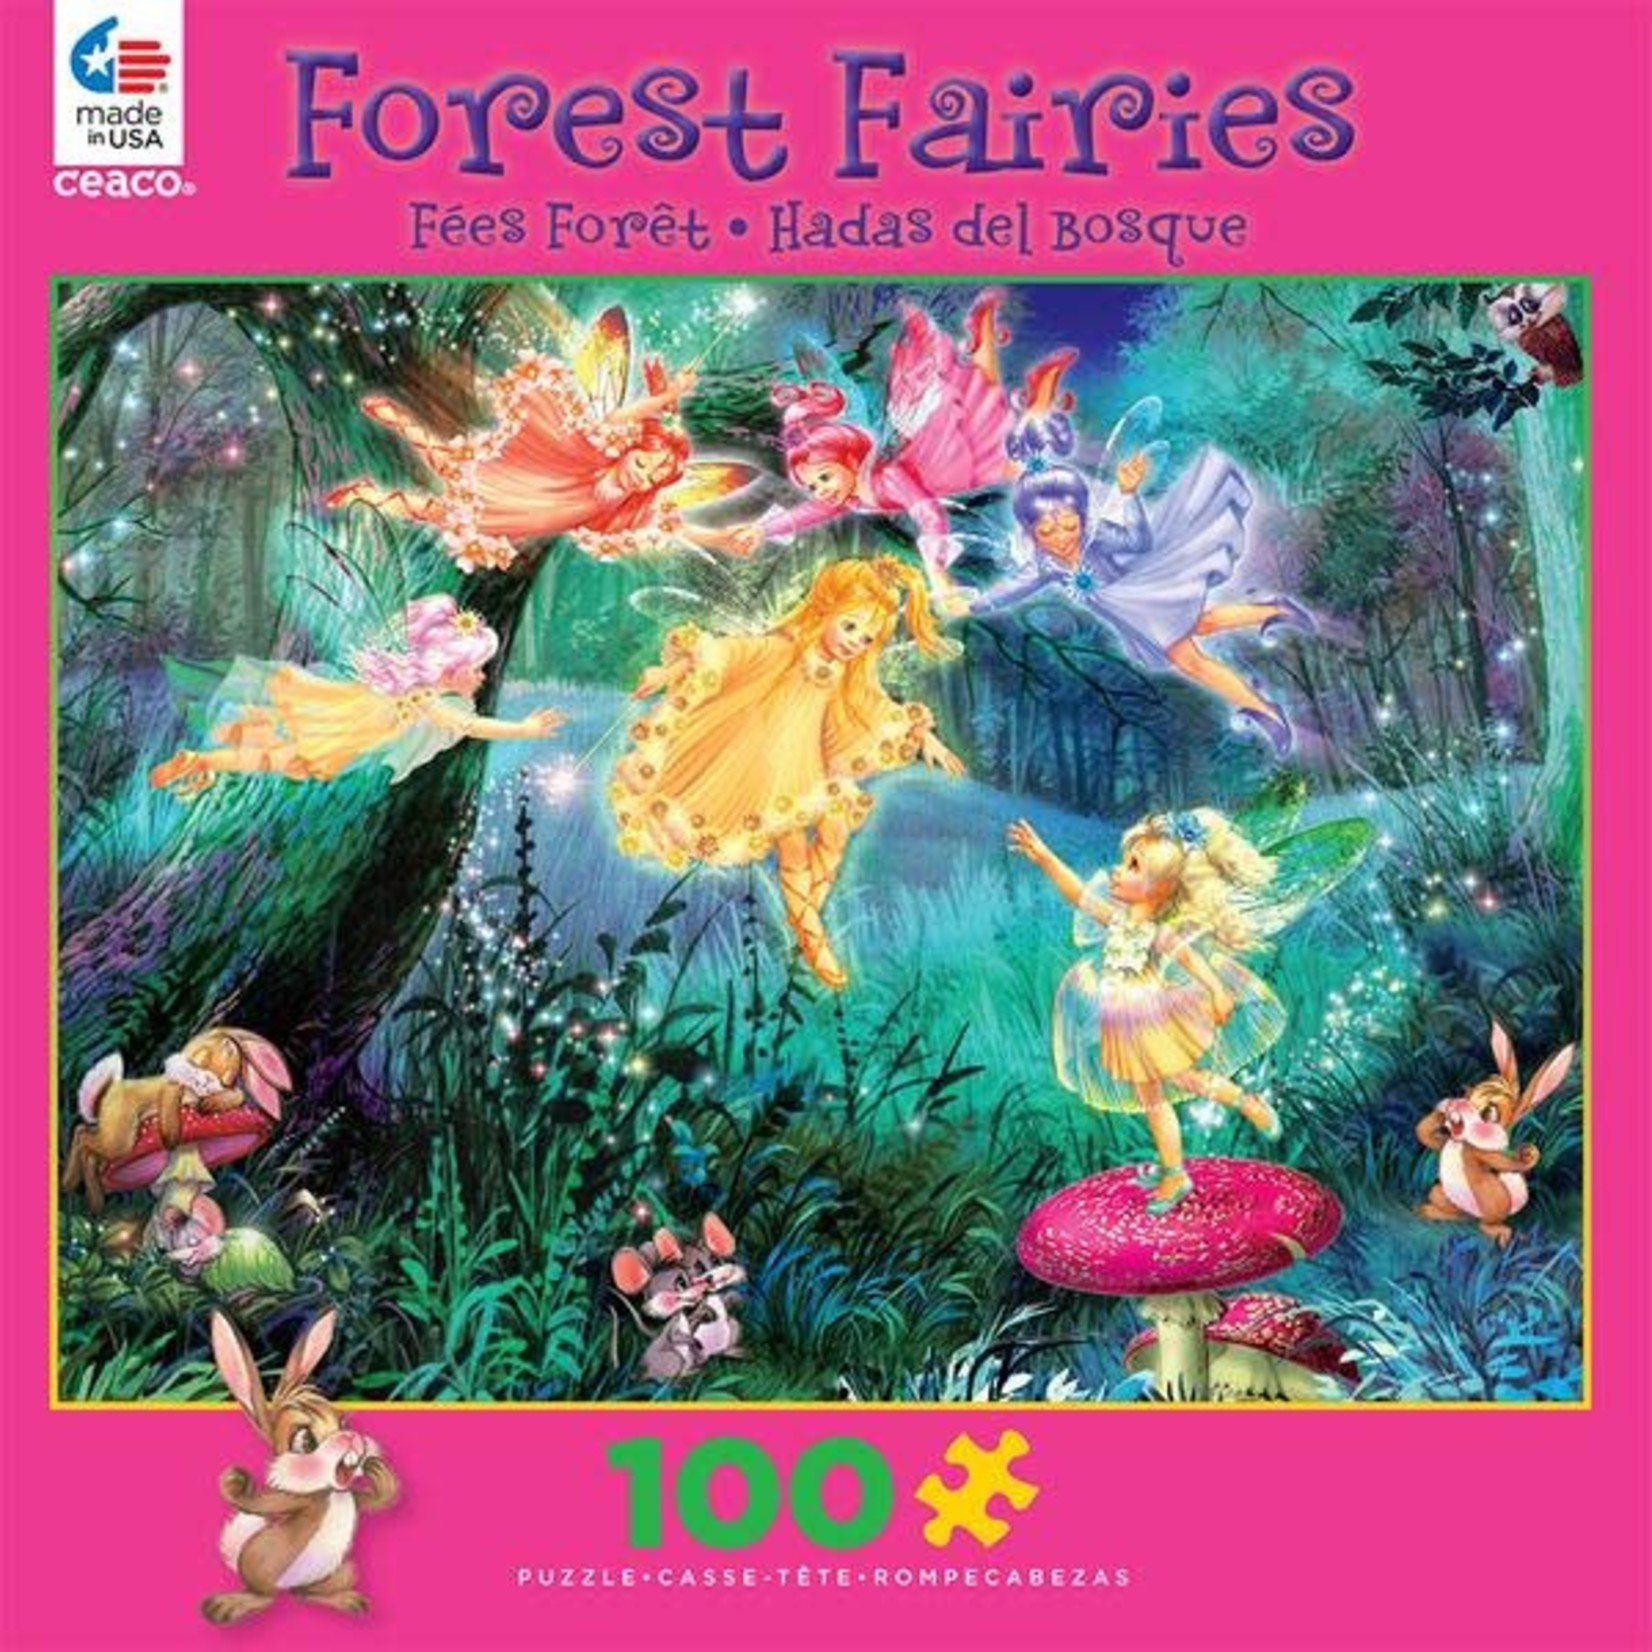 ceaco Ceaco - 100 Piece Puzzle: Glitter Forest Faeries - Fairy Ring of Six